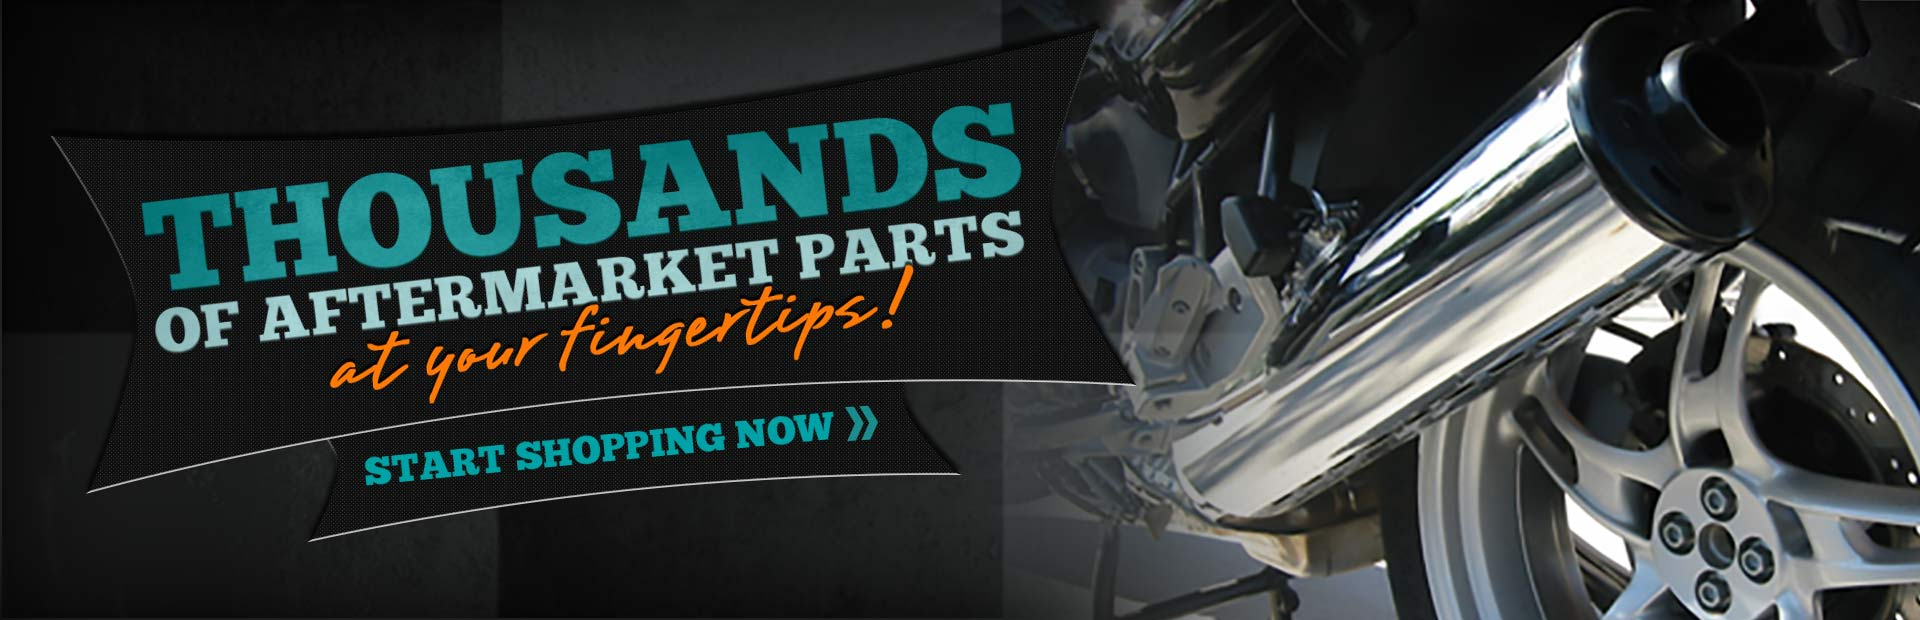 There are thousands of aftermarket parts at your fingertips! Click here to start shopping now.